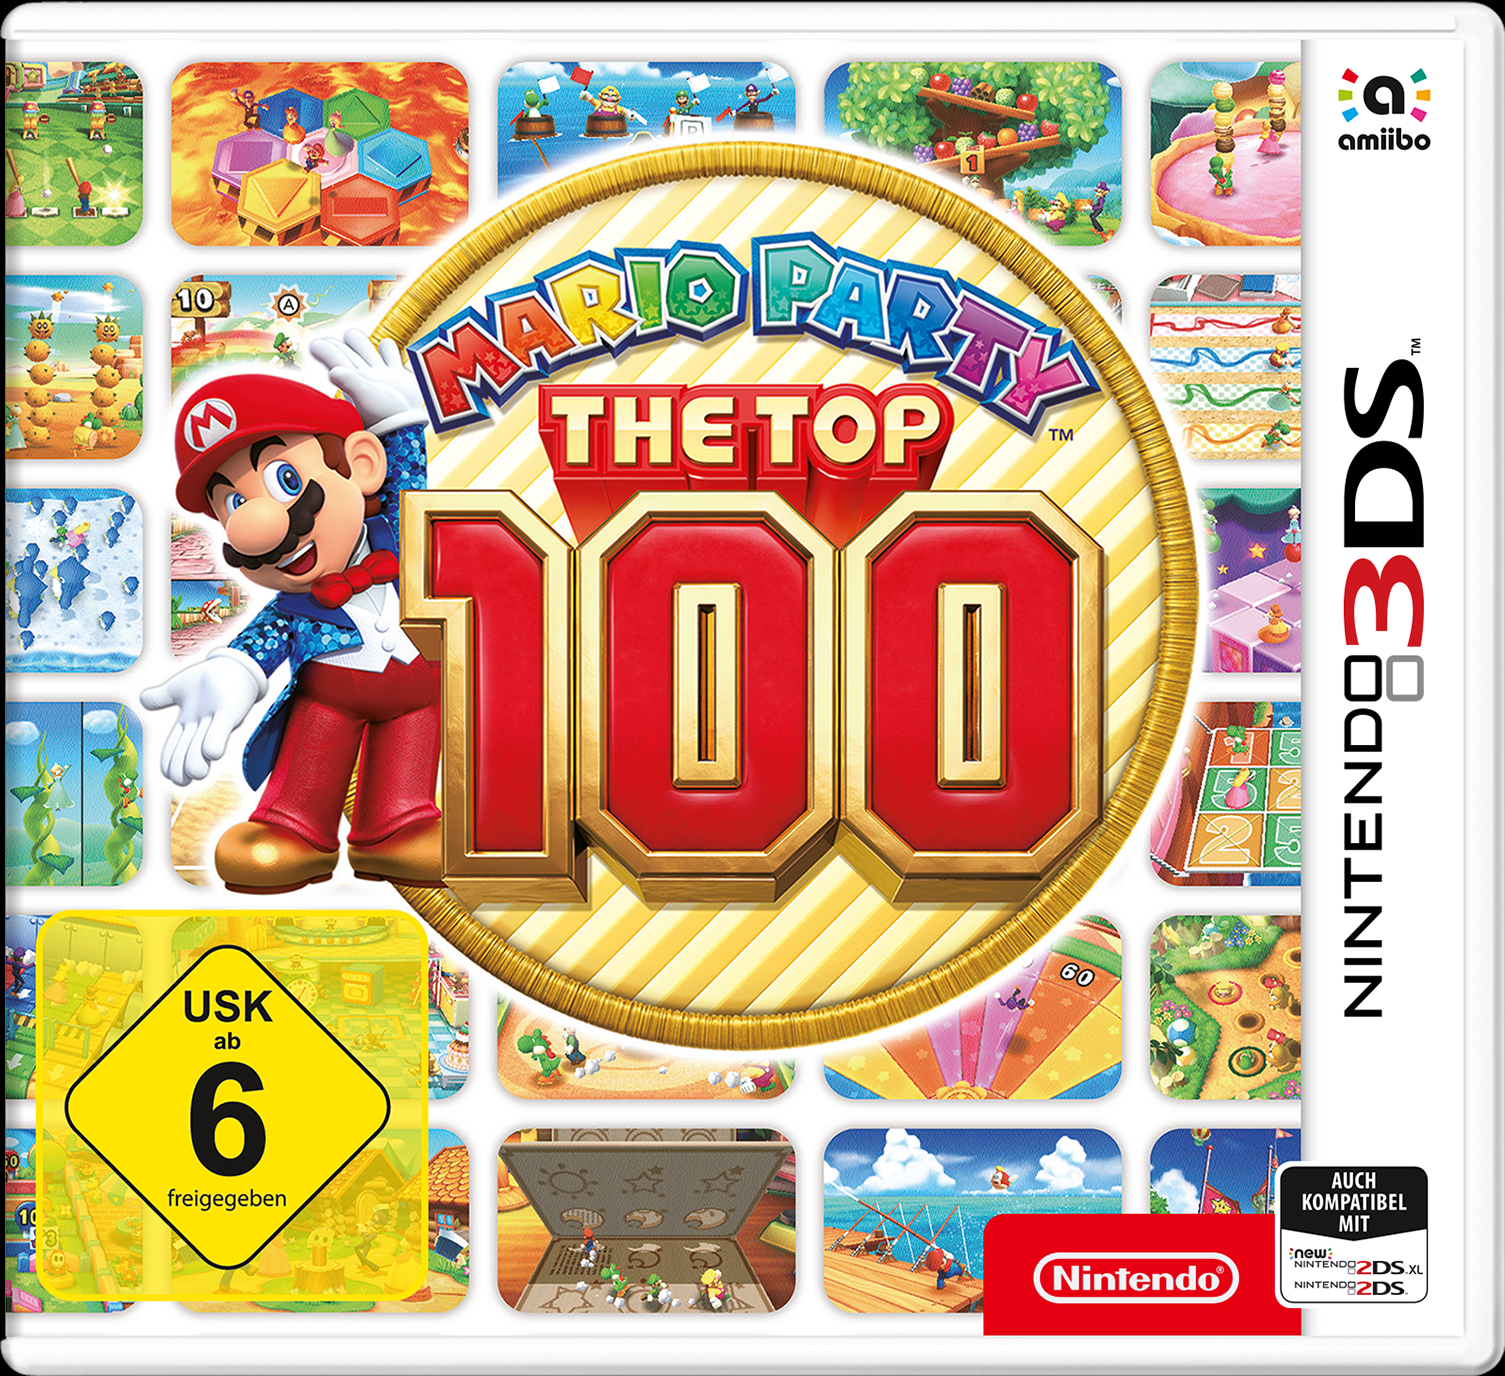 n3ds_mario-party-top-100_packshot_ctr_marioparty_thetop100_ps_ger